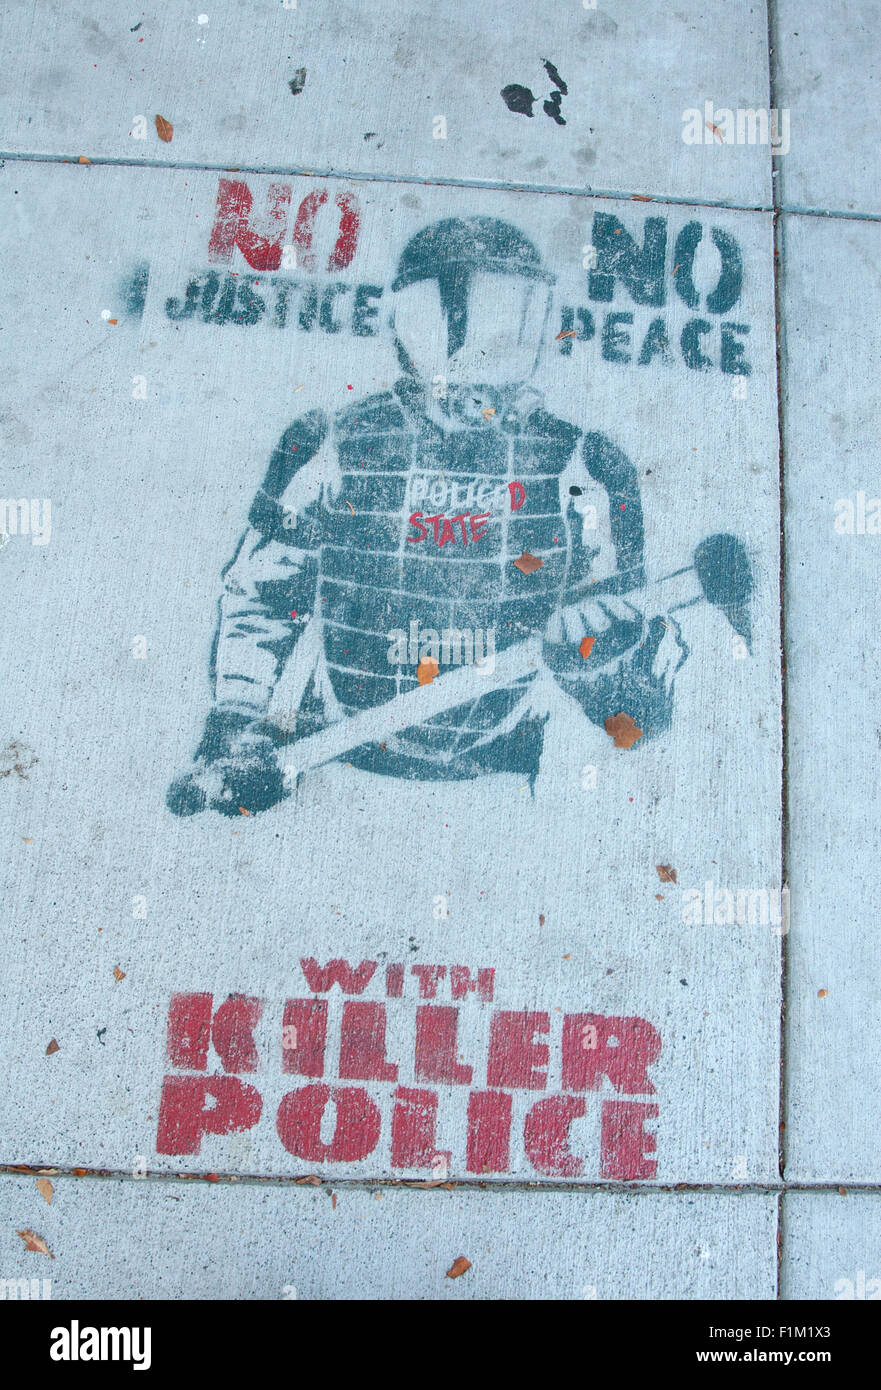 Sidewalk graffiti at 24th and Harrison in The Mission: 'No Justice, No Peace, With Killer Police' - Stock Image